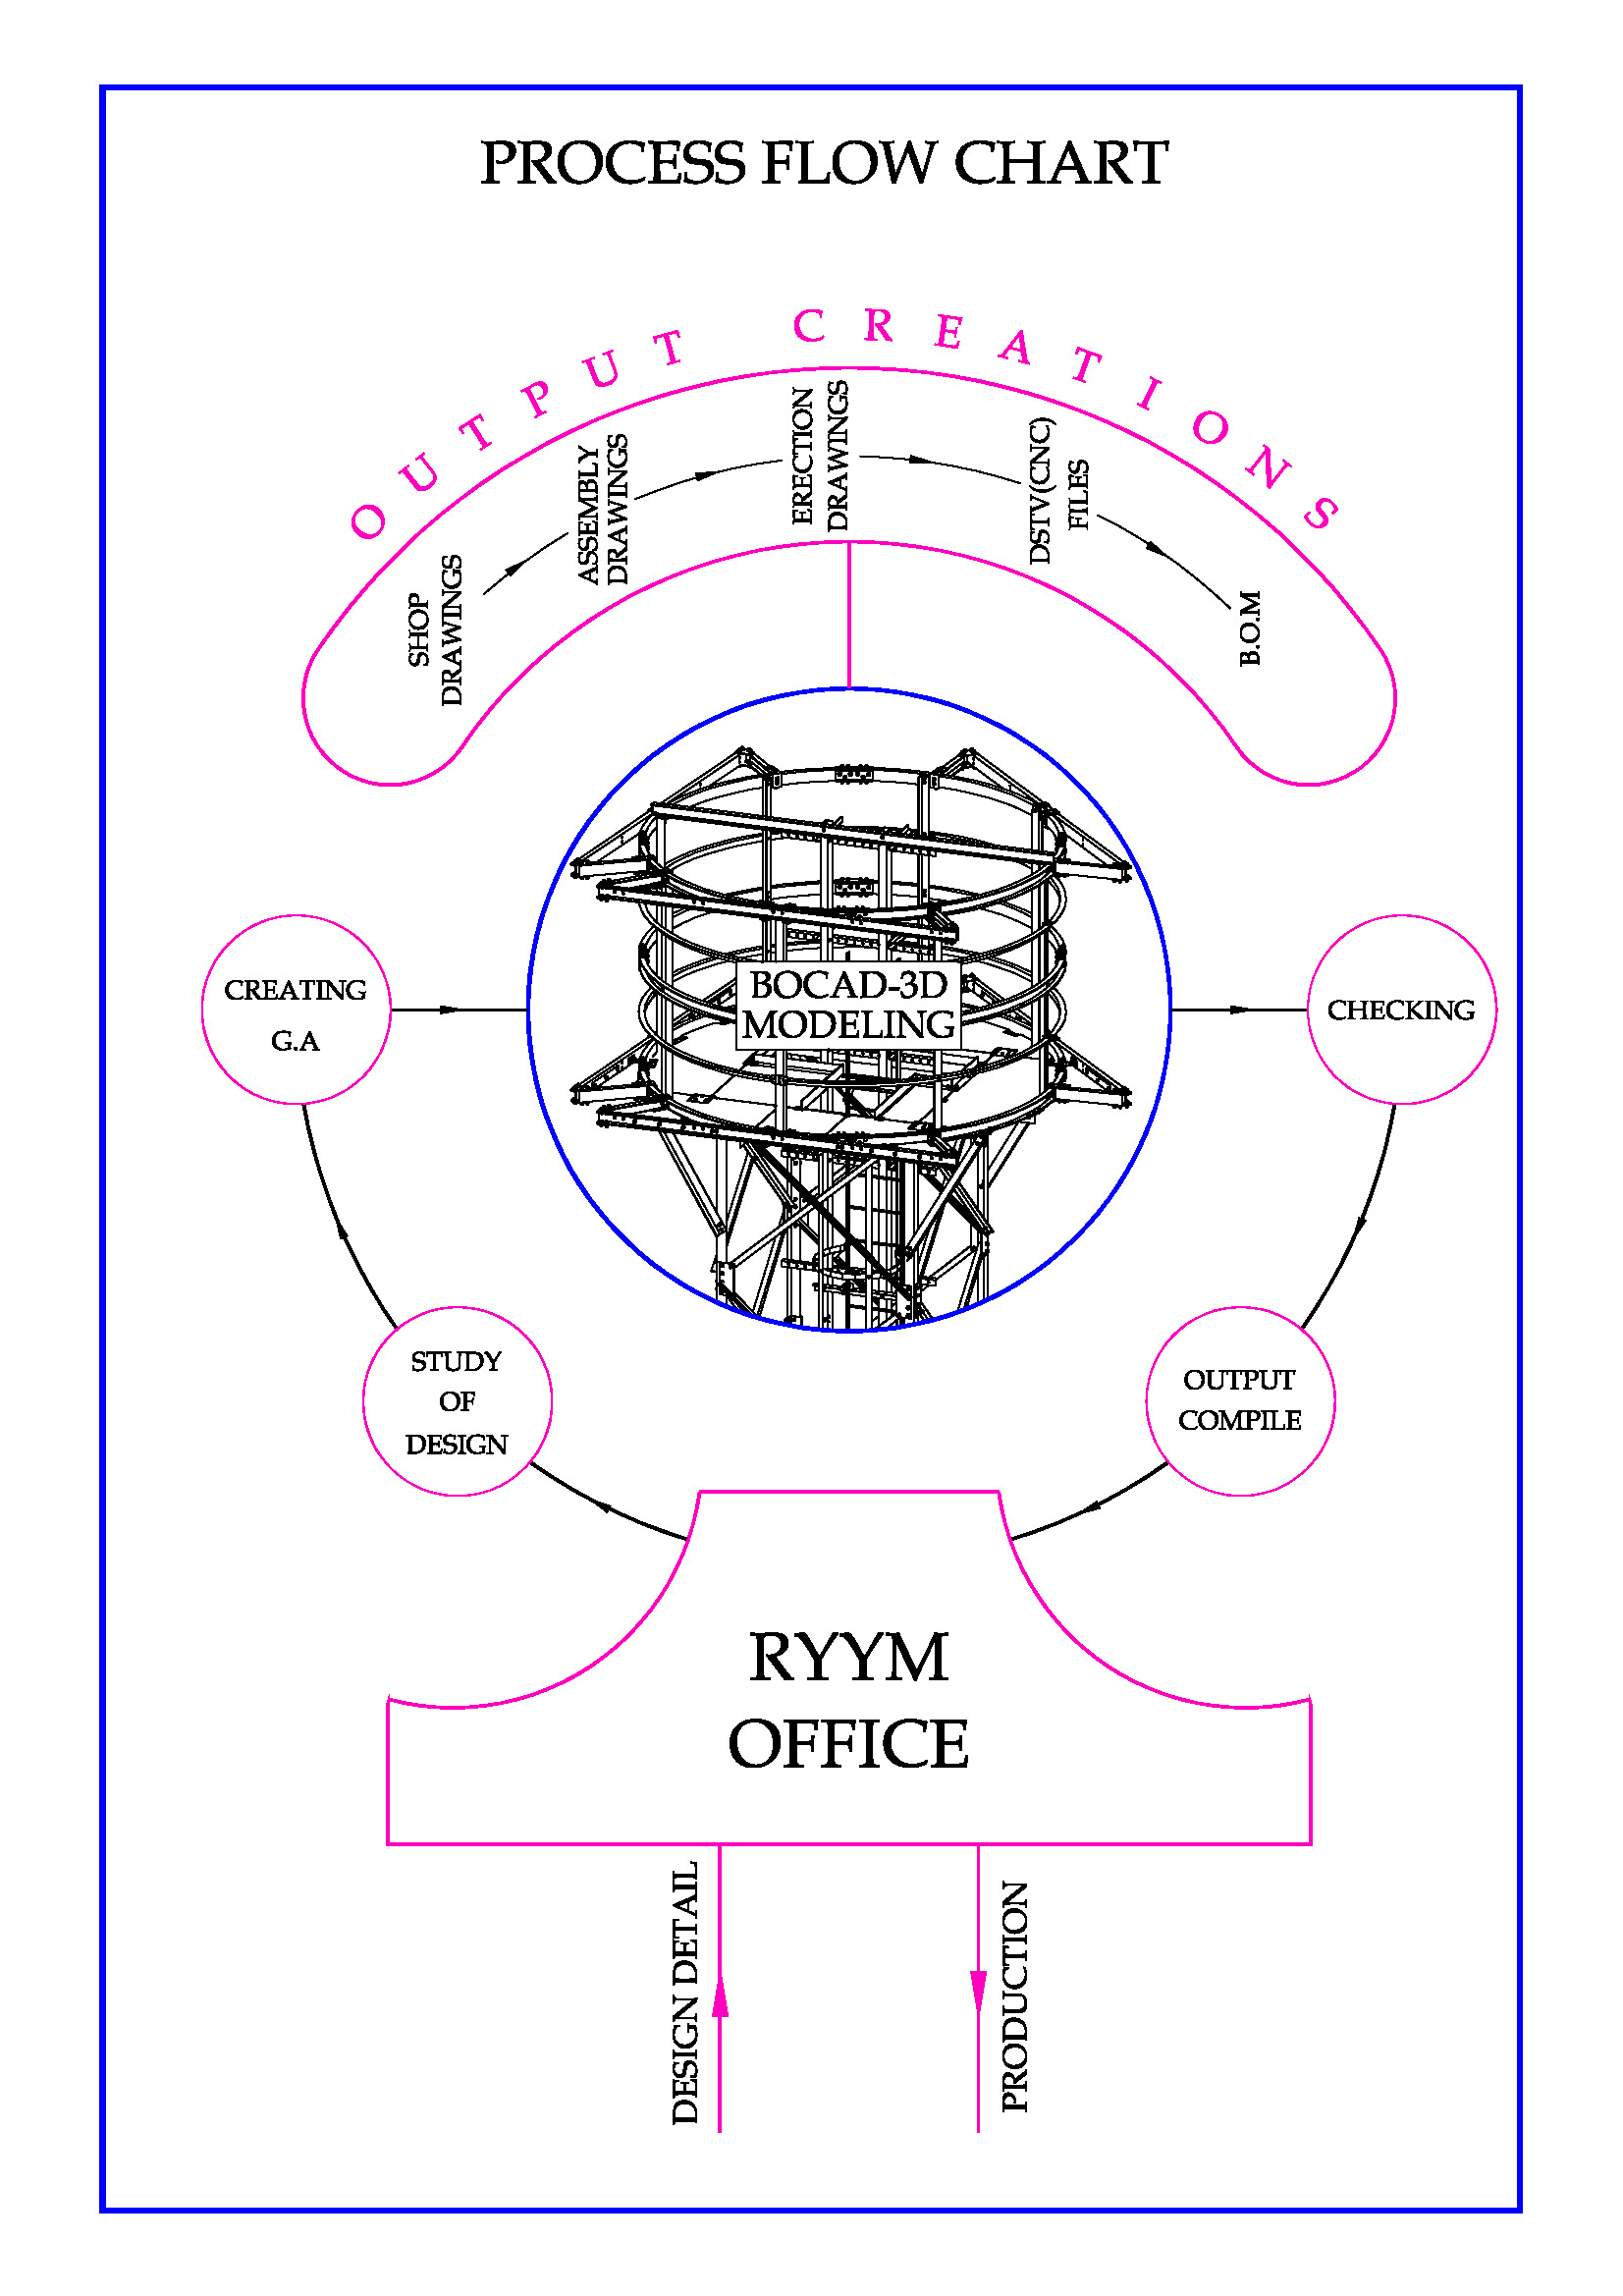 Process Flow Chart Ryym Engineers Pvt Ltd Diagram Drawing Images